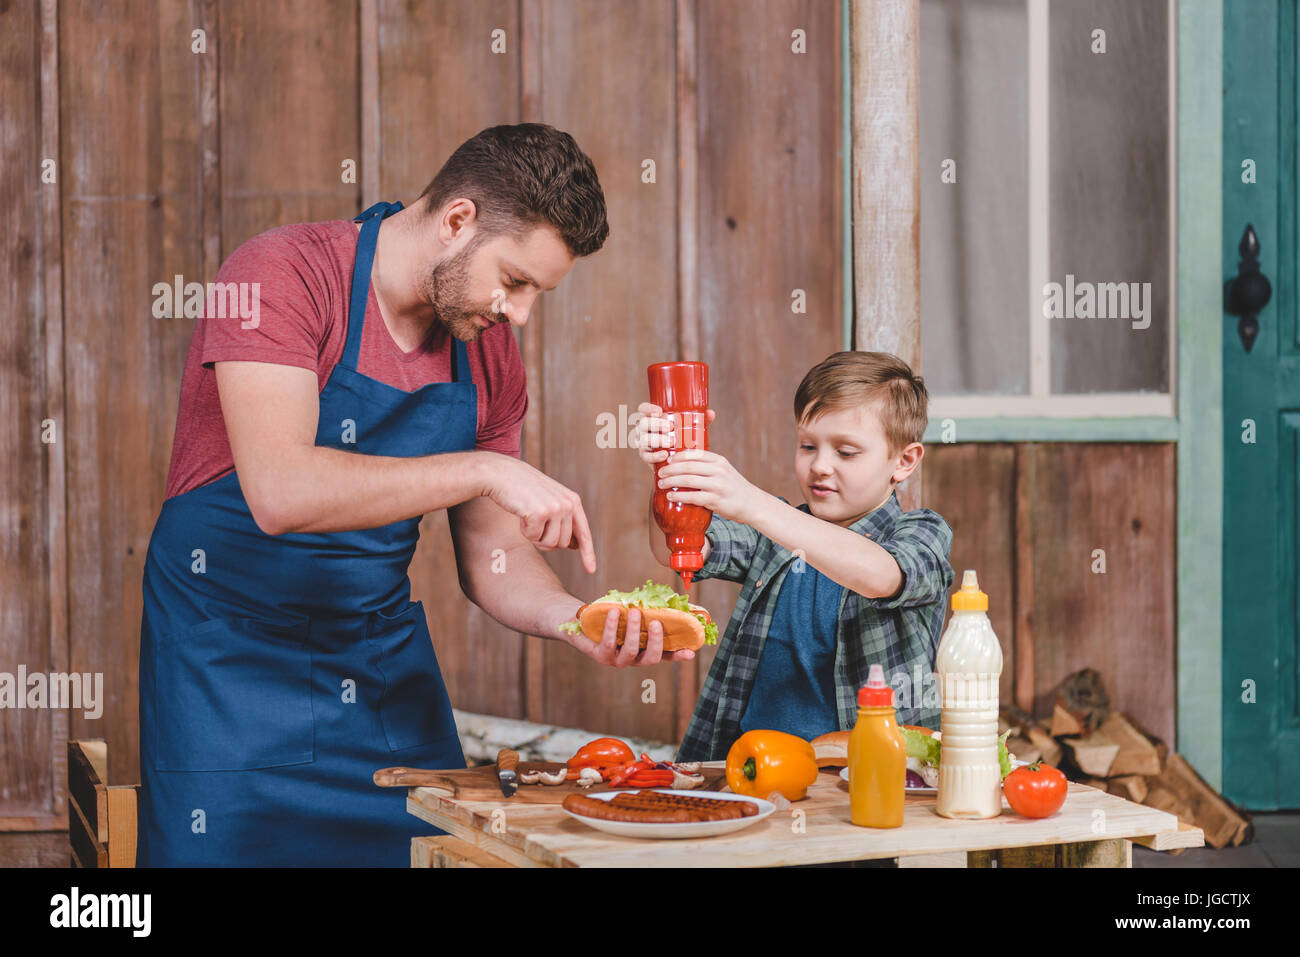 Smiling little boy with father cooking hot dog at backyard, dad and son cooking concept - Stock Image